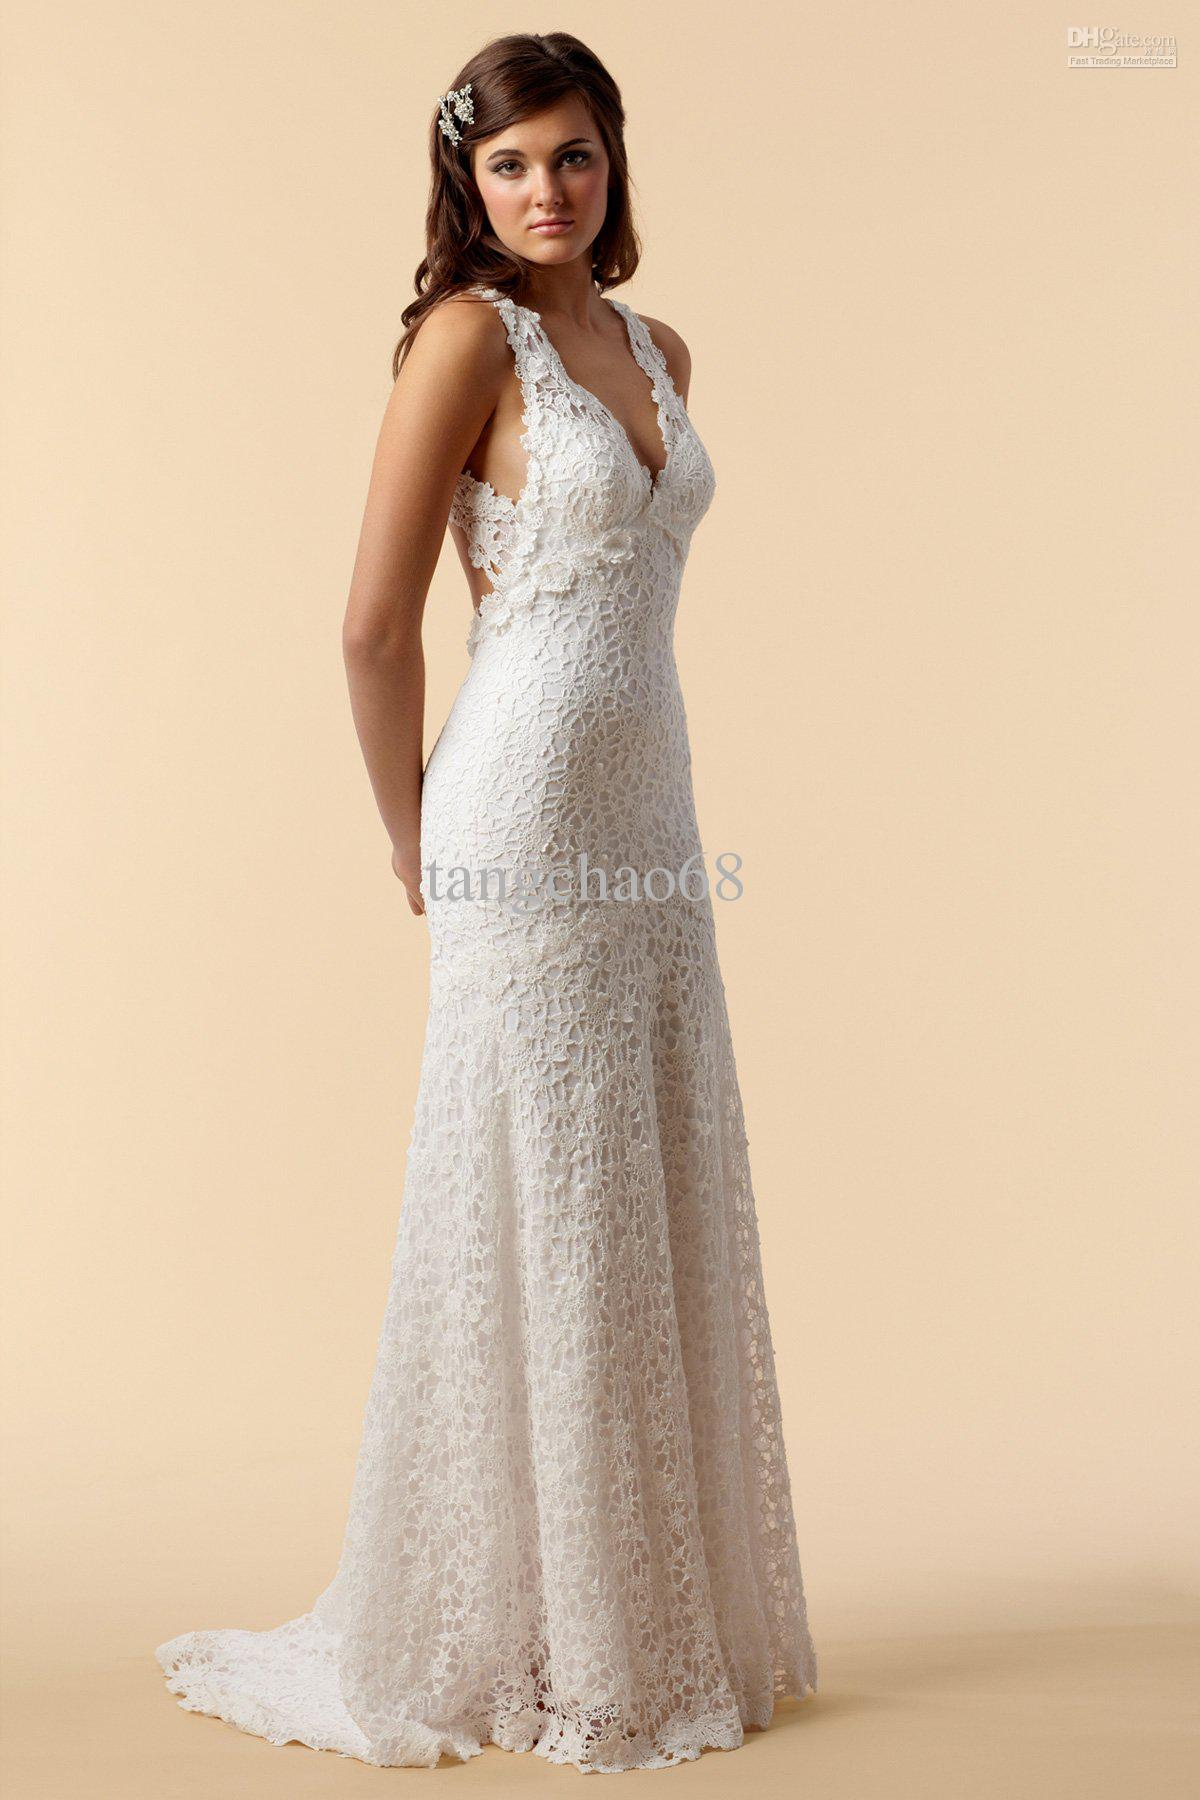 Dramatic Deep V Neck Sheath Sweep Train Lace Open Back